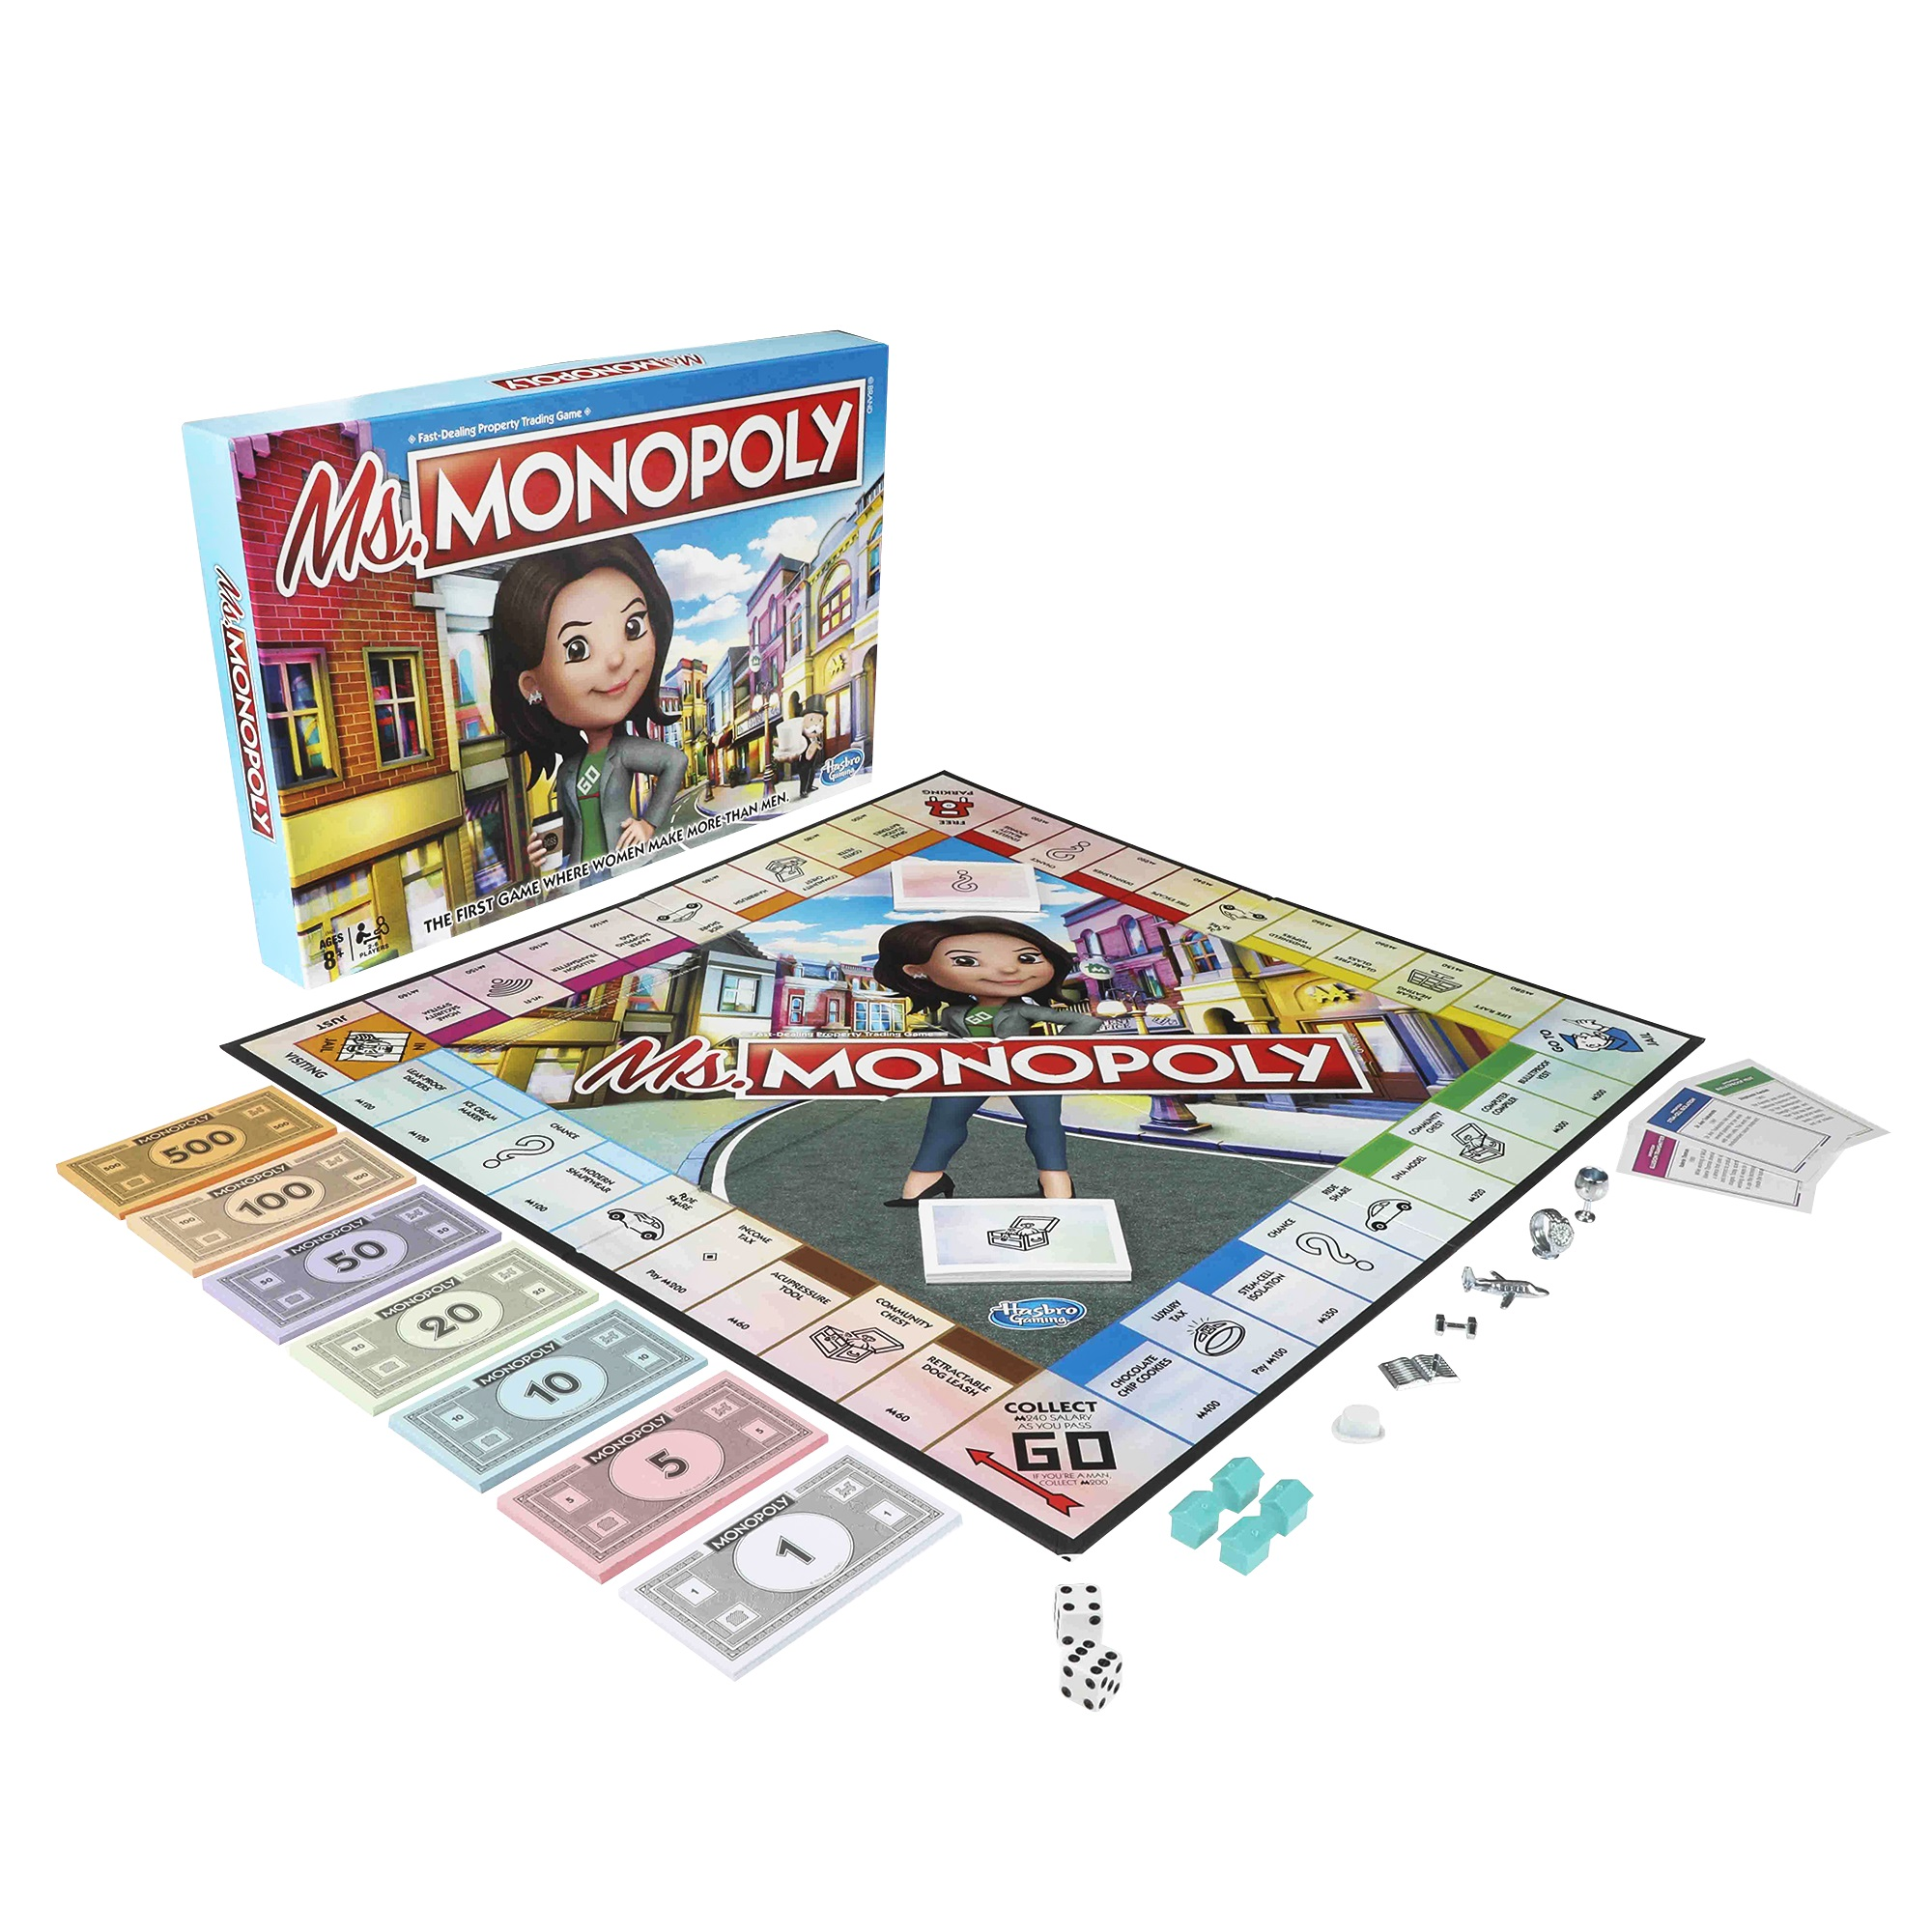 Ms Monopoly, a new game from Hasbro